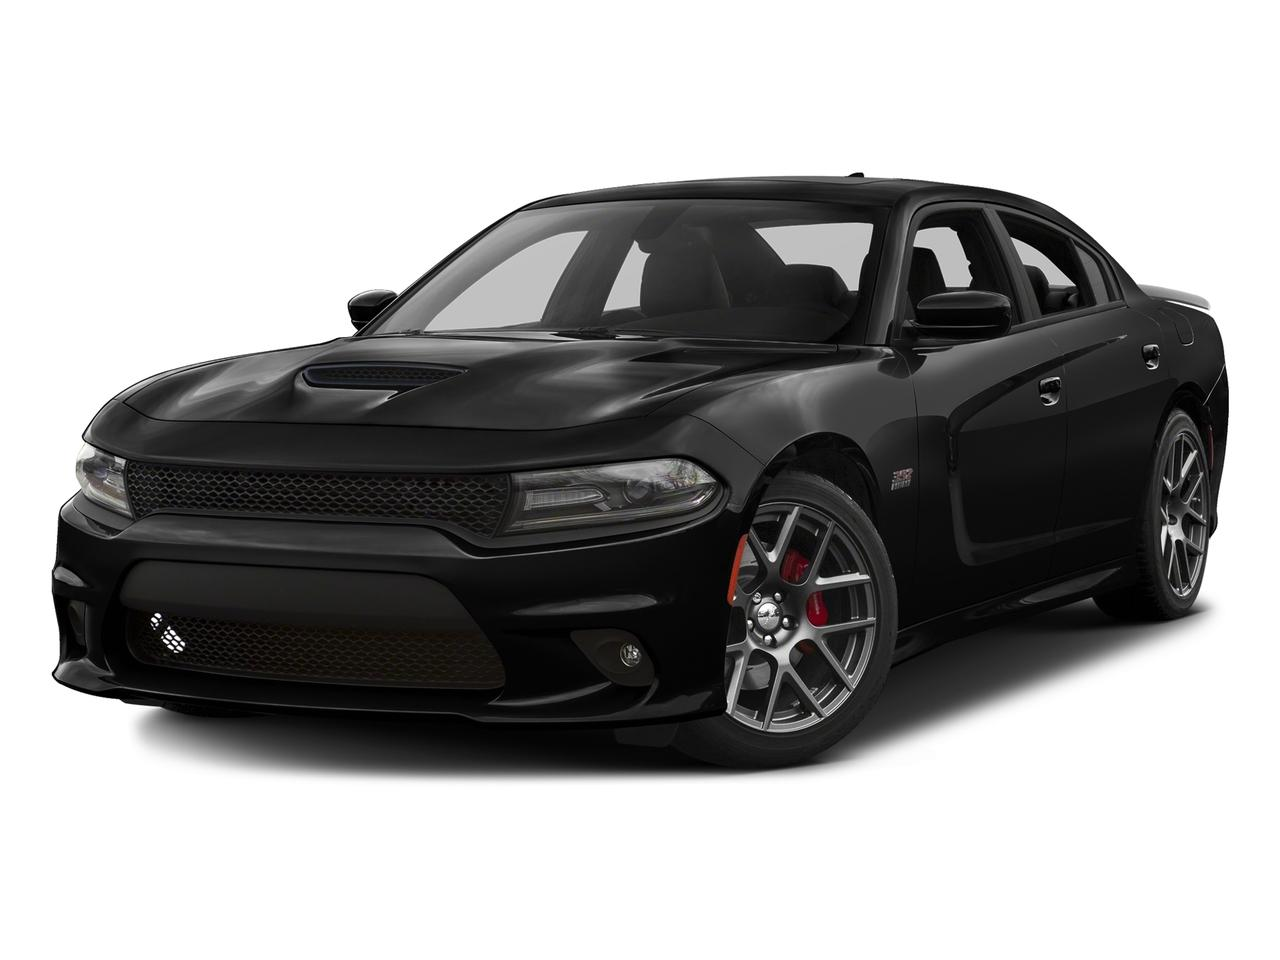 2017 Dodge Charger Vehicle Photo in DURHAM, NC 27713